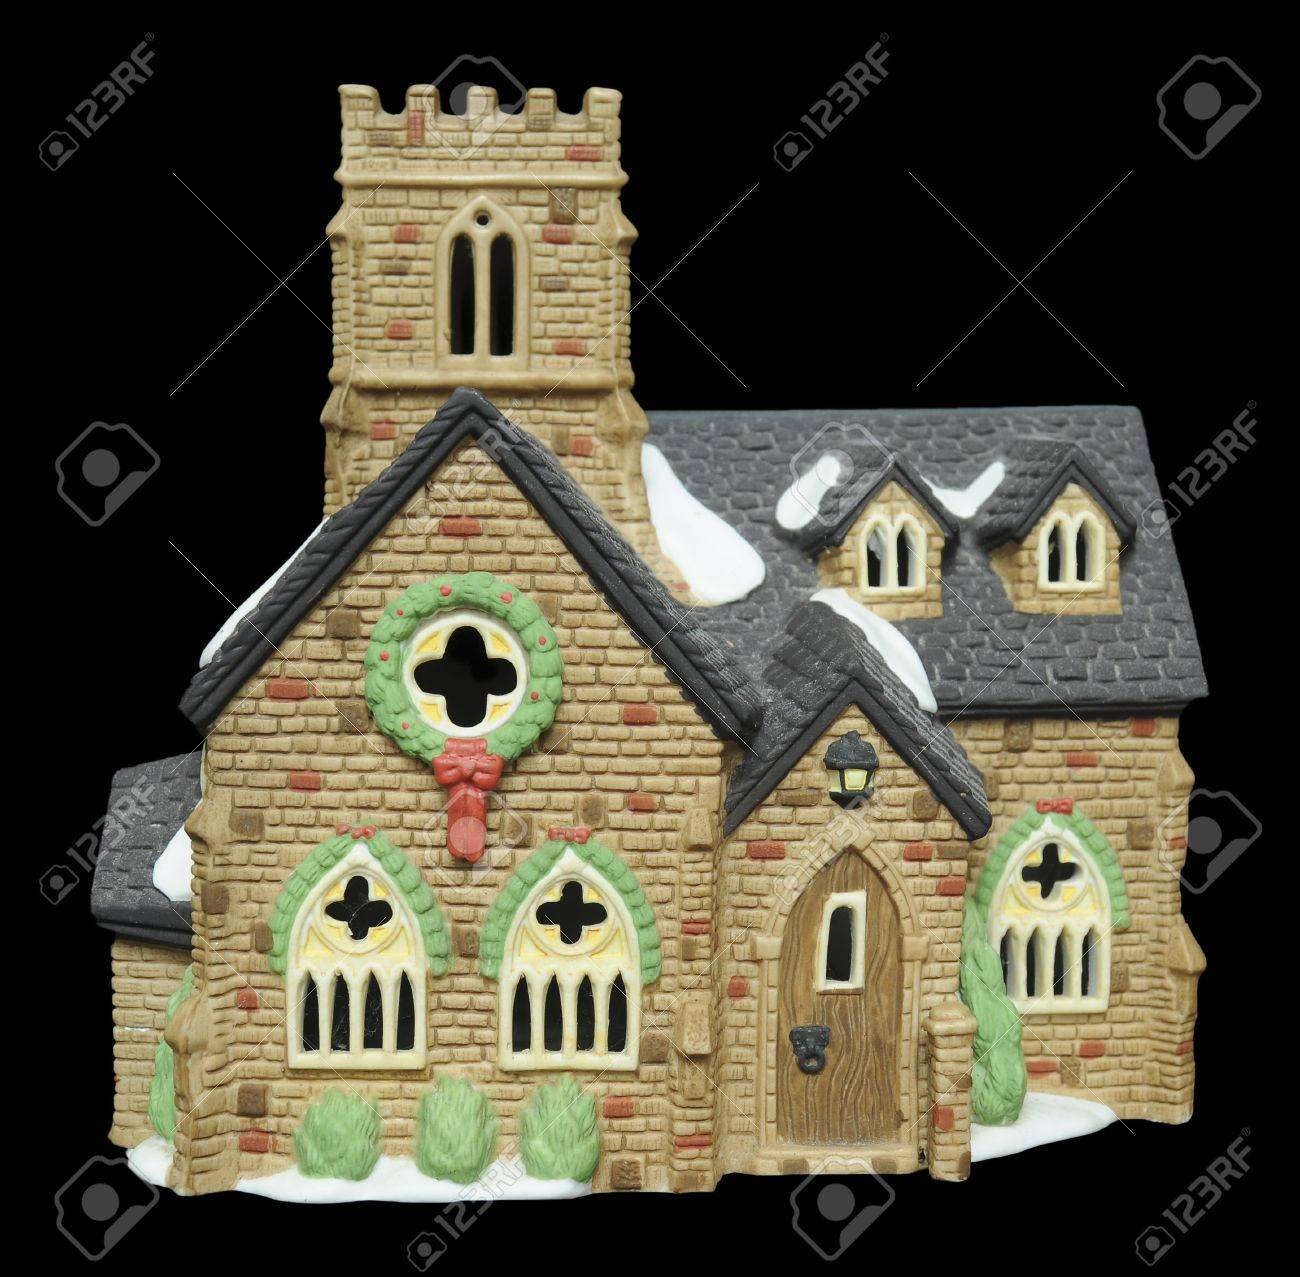 A Miniature Ceramic Church With Christmas Decorations And Snow